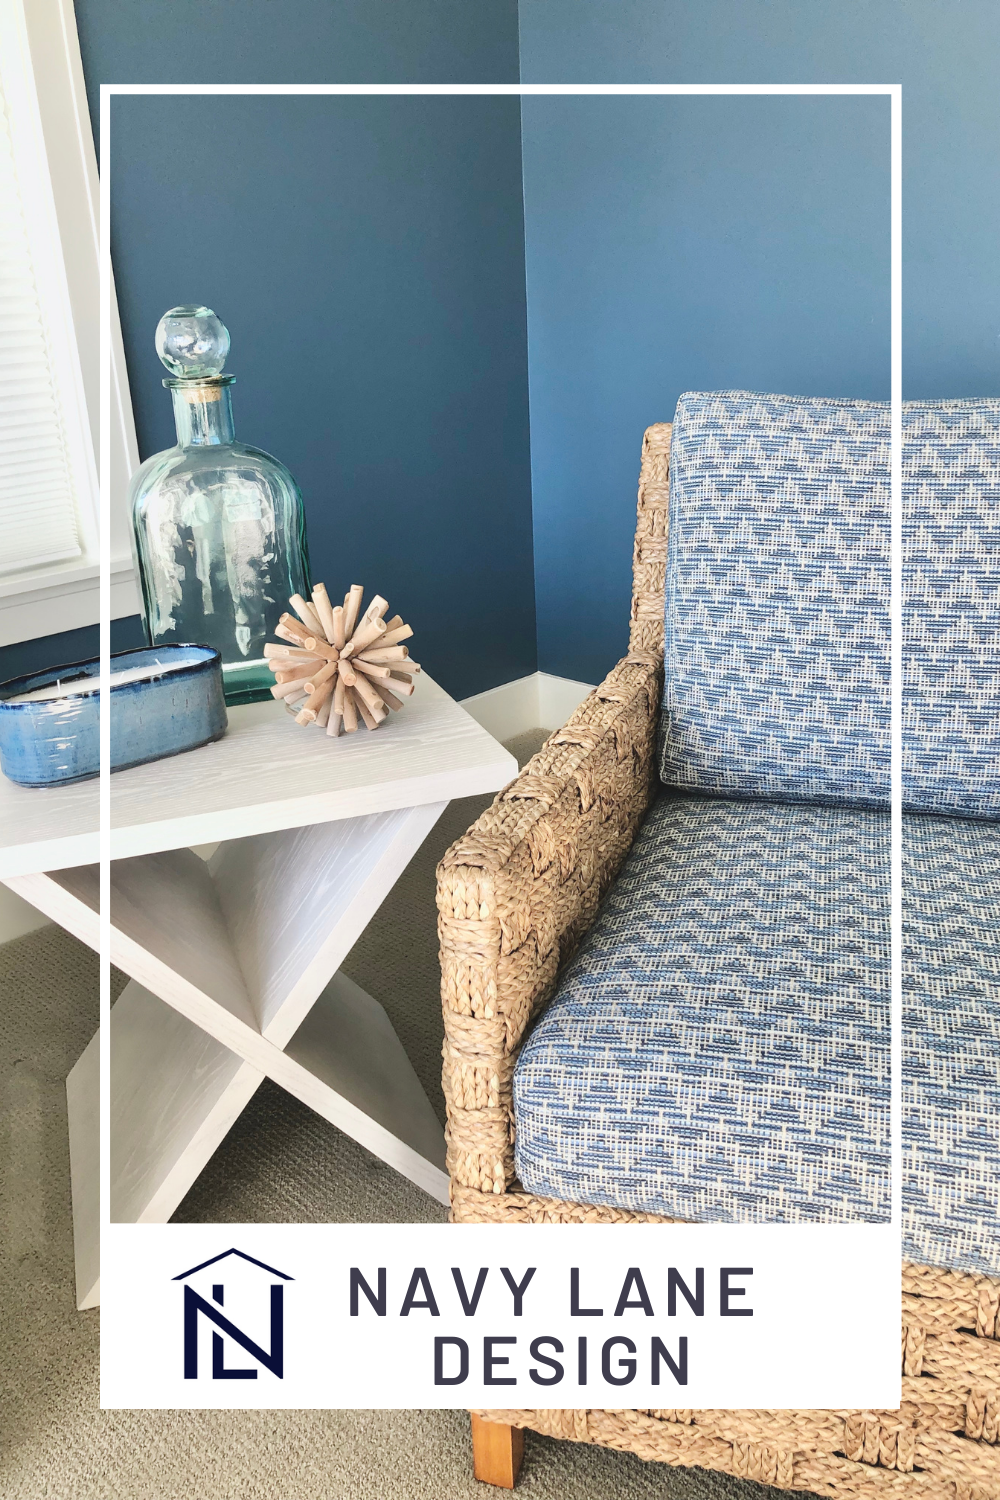 Blues, whites and woven textures make any sunroom feel like its on a lake! (This home was on Lake Macatawa in Holland, MI.) Lake house decor in a classy way for this client! #Lakehouse #nauticaldecor #sunroom #sunroomideas #bluepaint #navyandwhitedecor